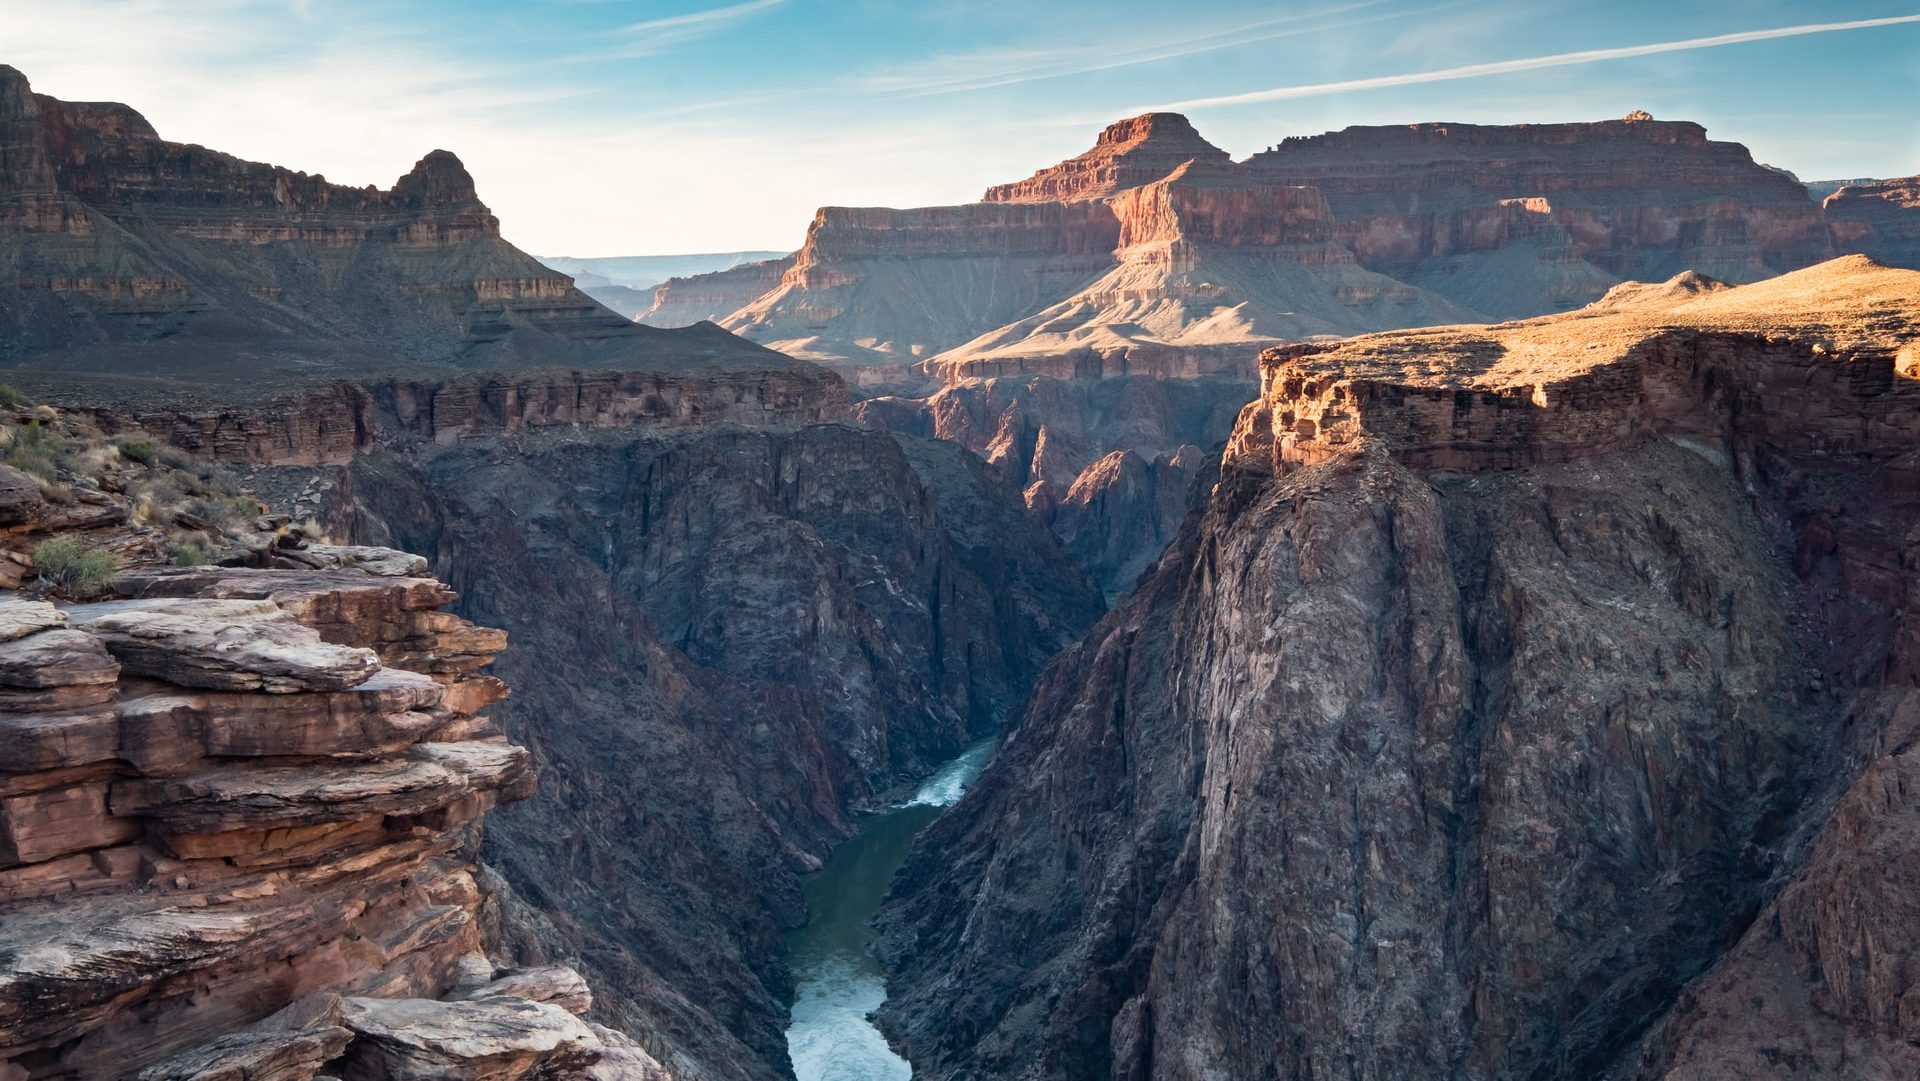 The Grand Canyon is the most famous natural wonder in the U.S.